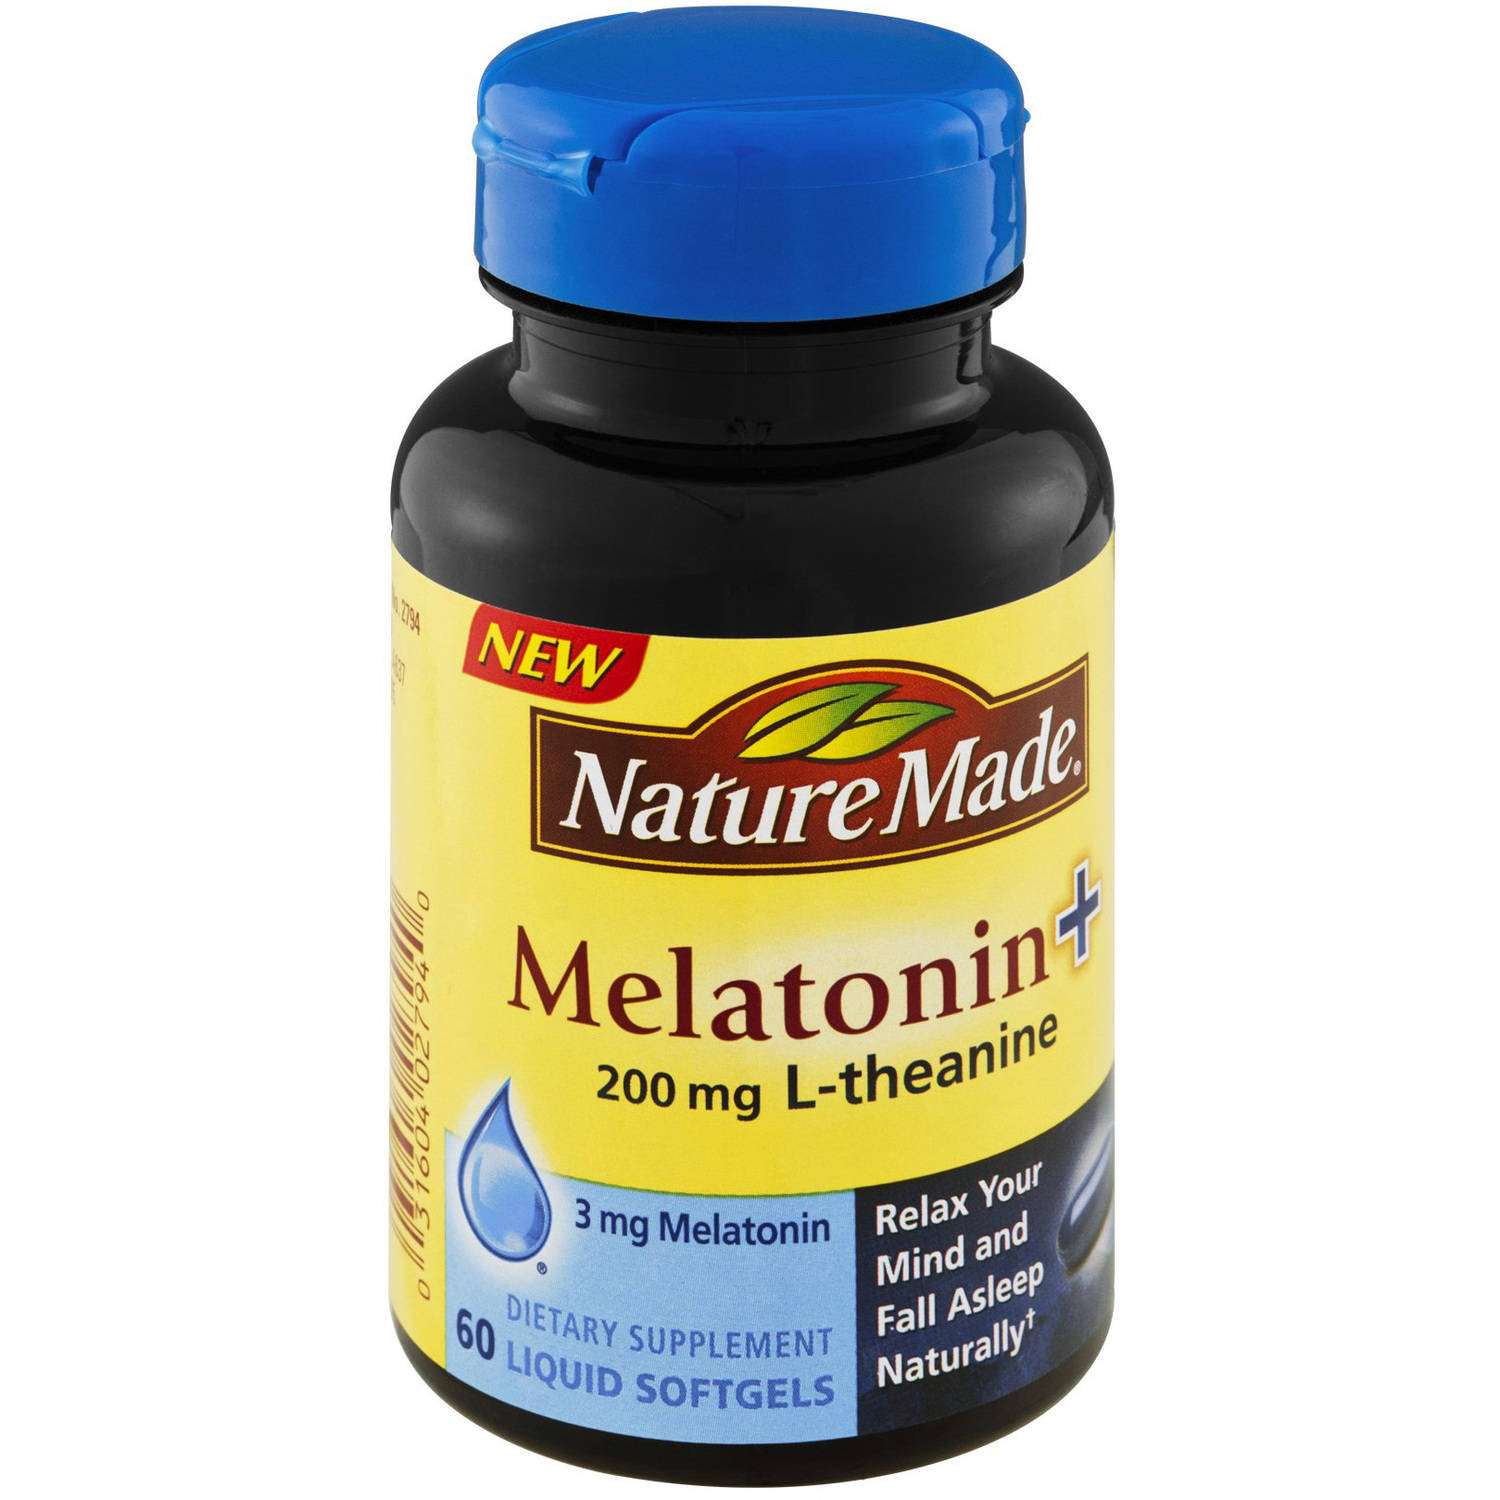 Nature Made Melatonin + L-Theanine 200mg, 60 CT (Pack of 3)